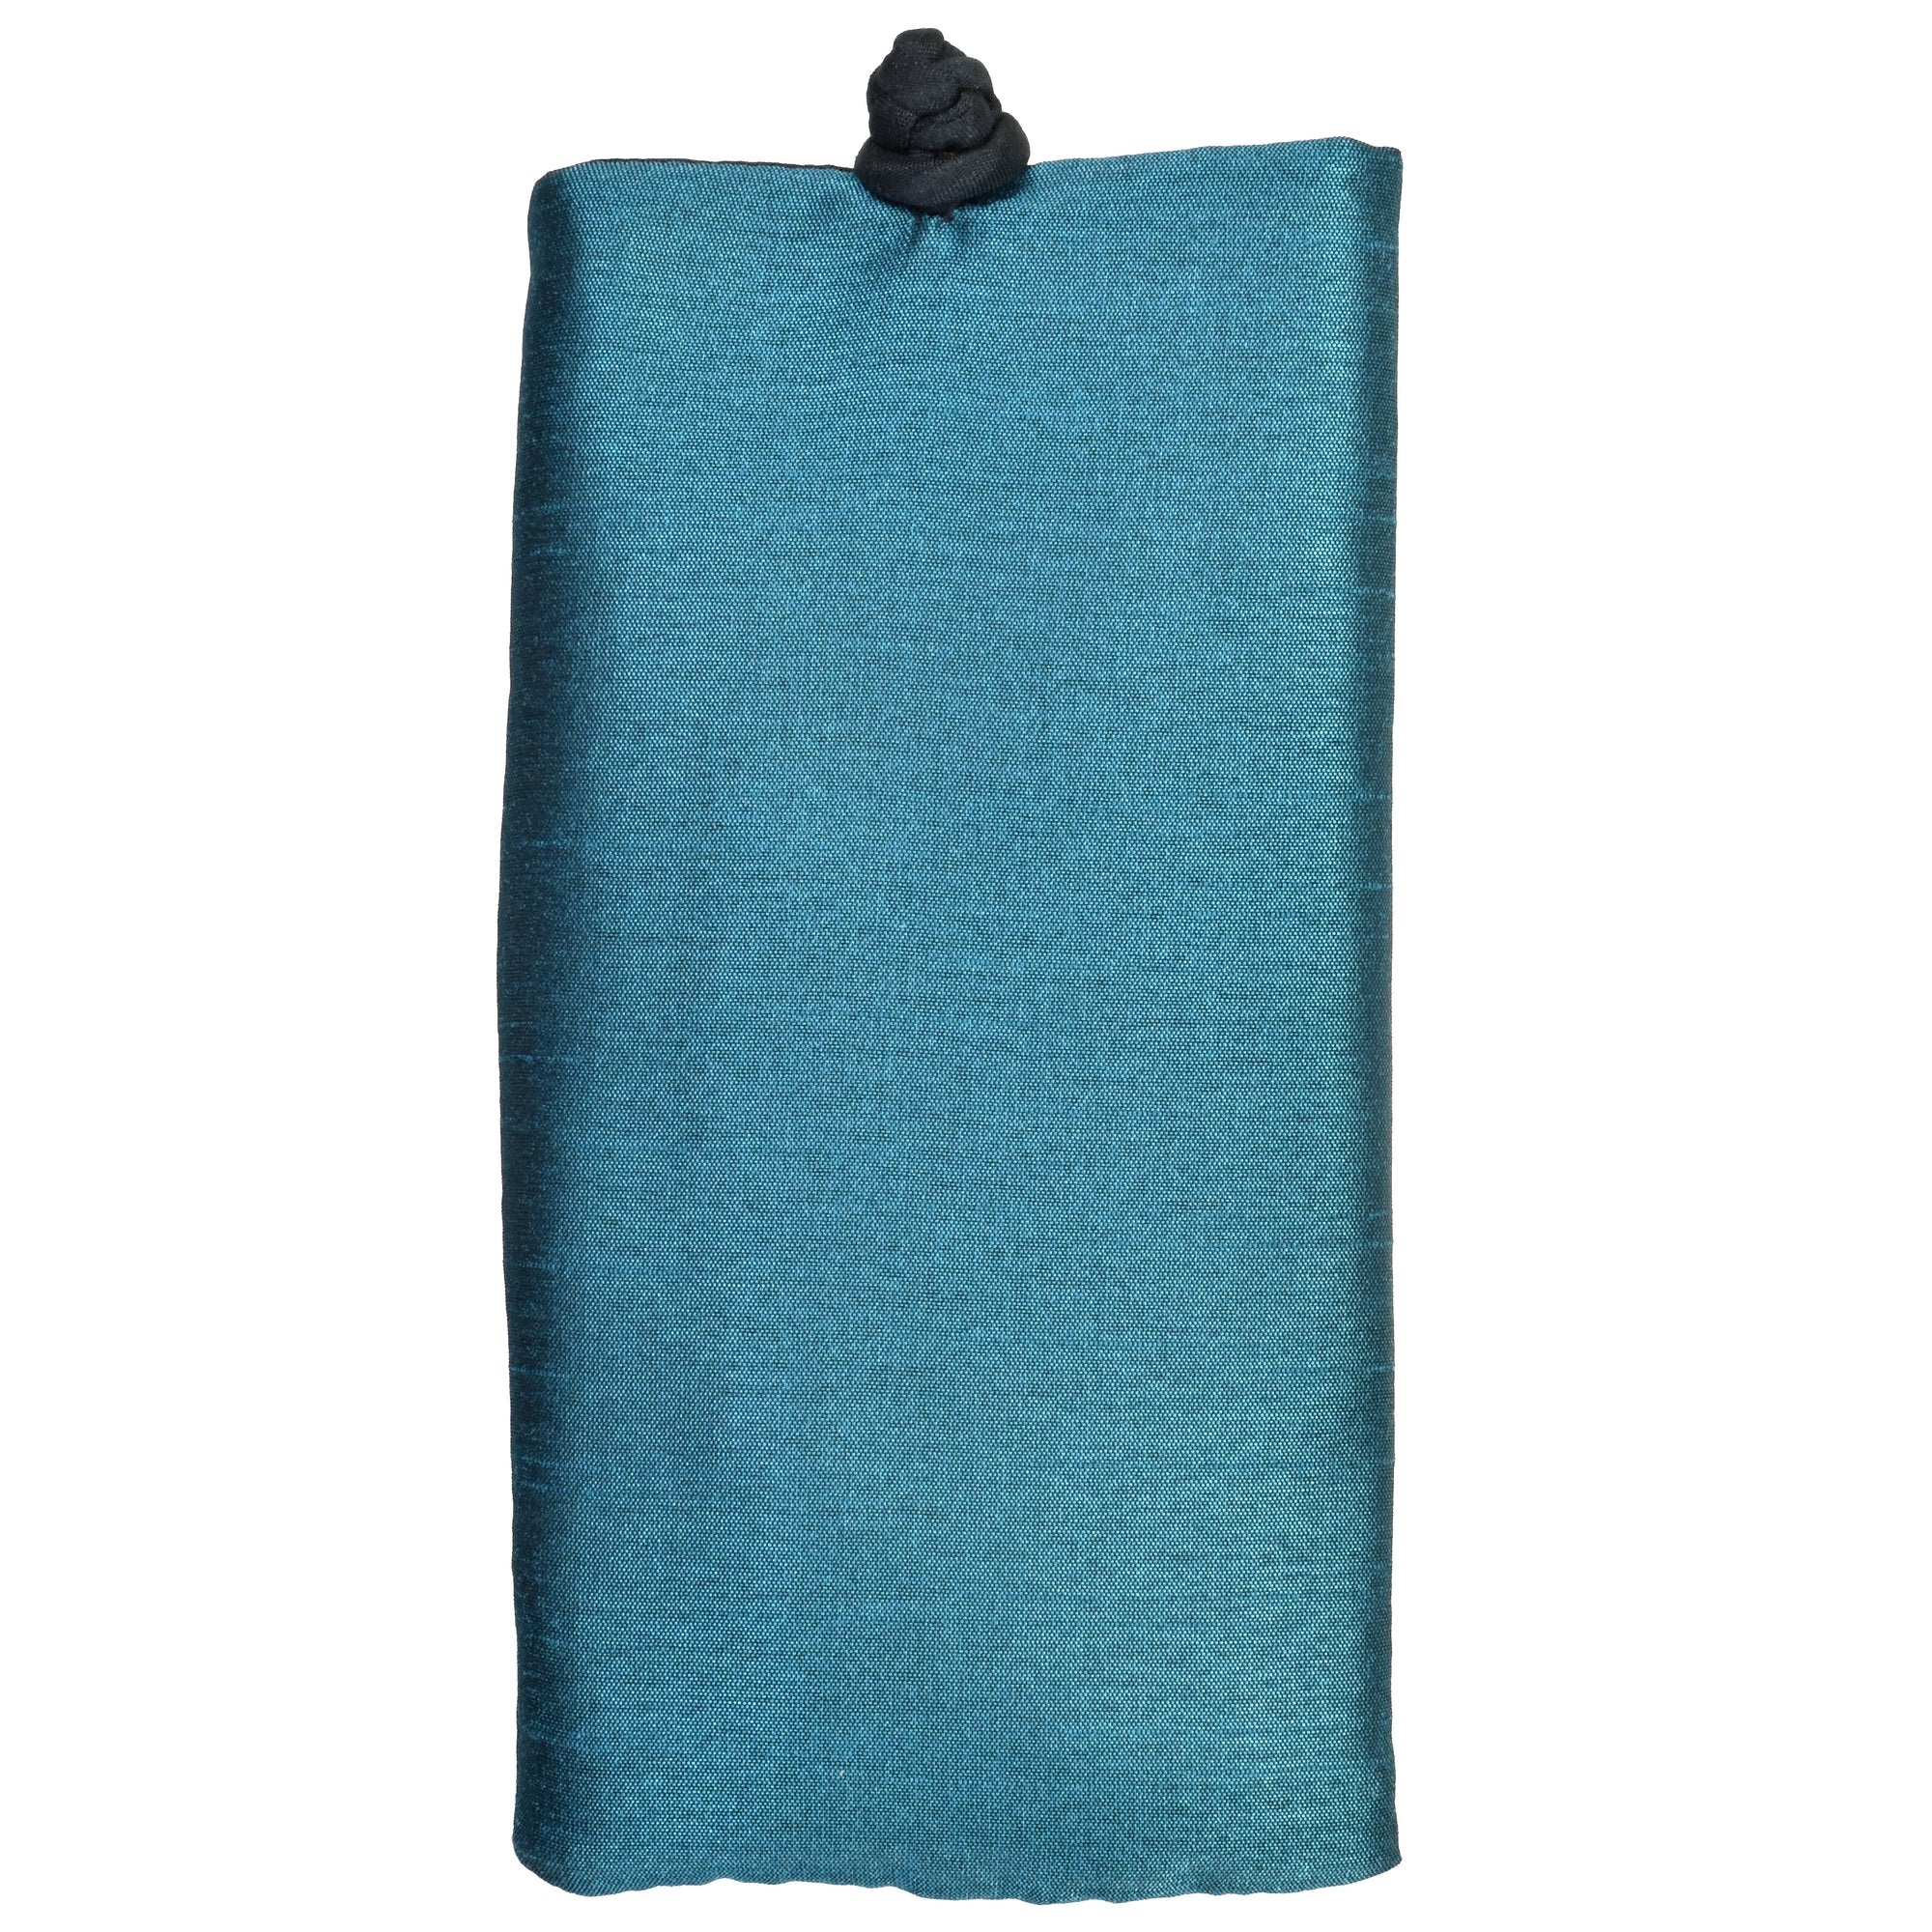 Soft Eyeglass Case (Sunglasses Pouch), Knot and Loop Closure, Poly Dupioni Silk, Teal & Black